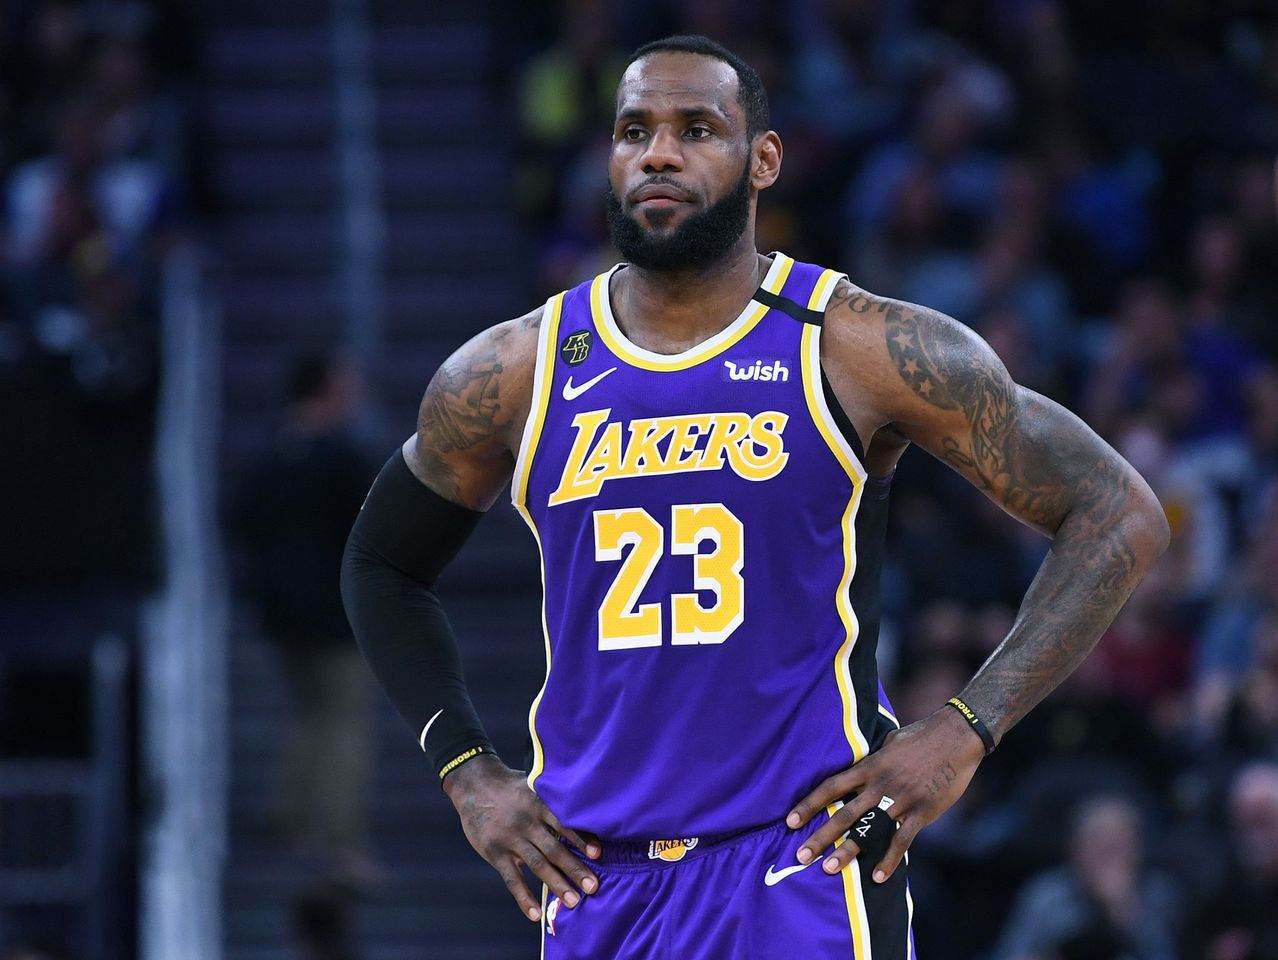 LeBron James #23 of the Los Angeles Lakers looks on against the Golden State Warriors during an NBA basketball game on February 08, 2020. | Photo: Getty Images